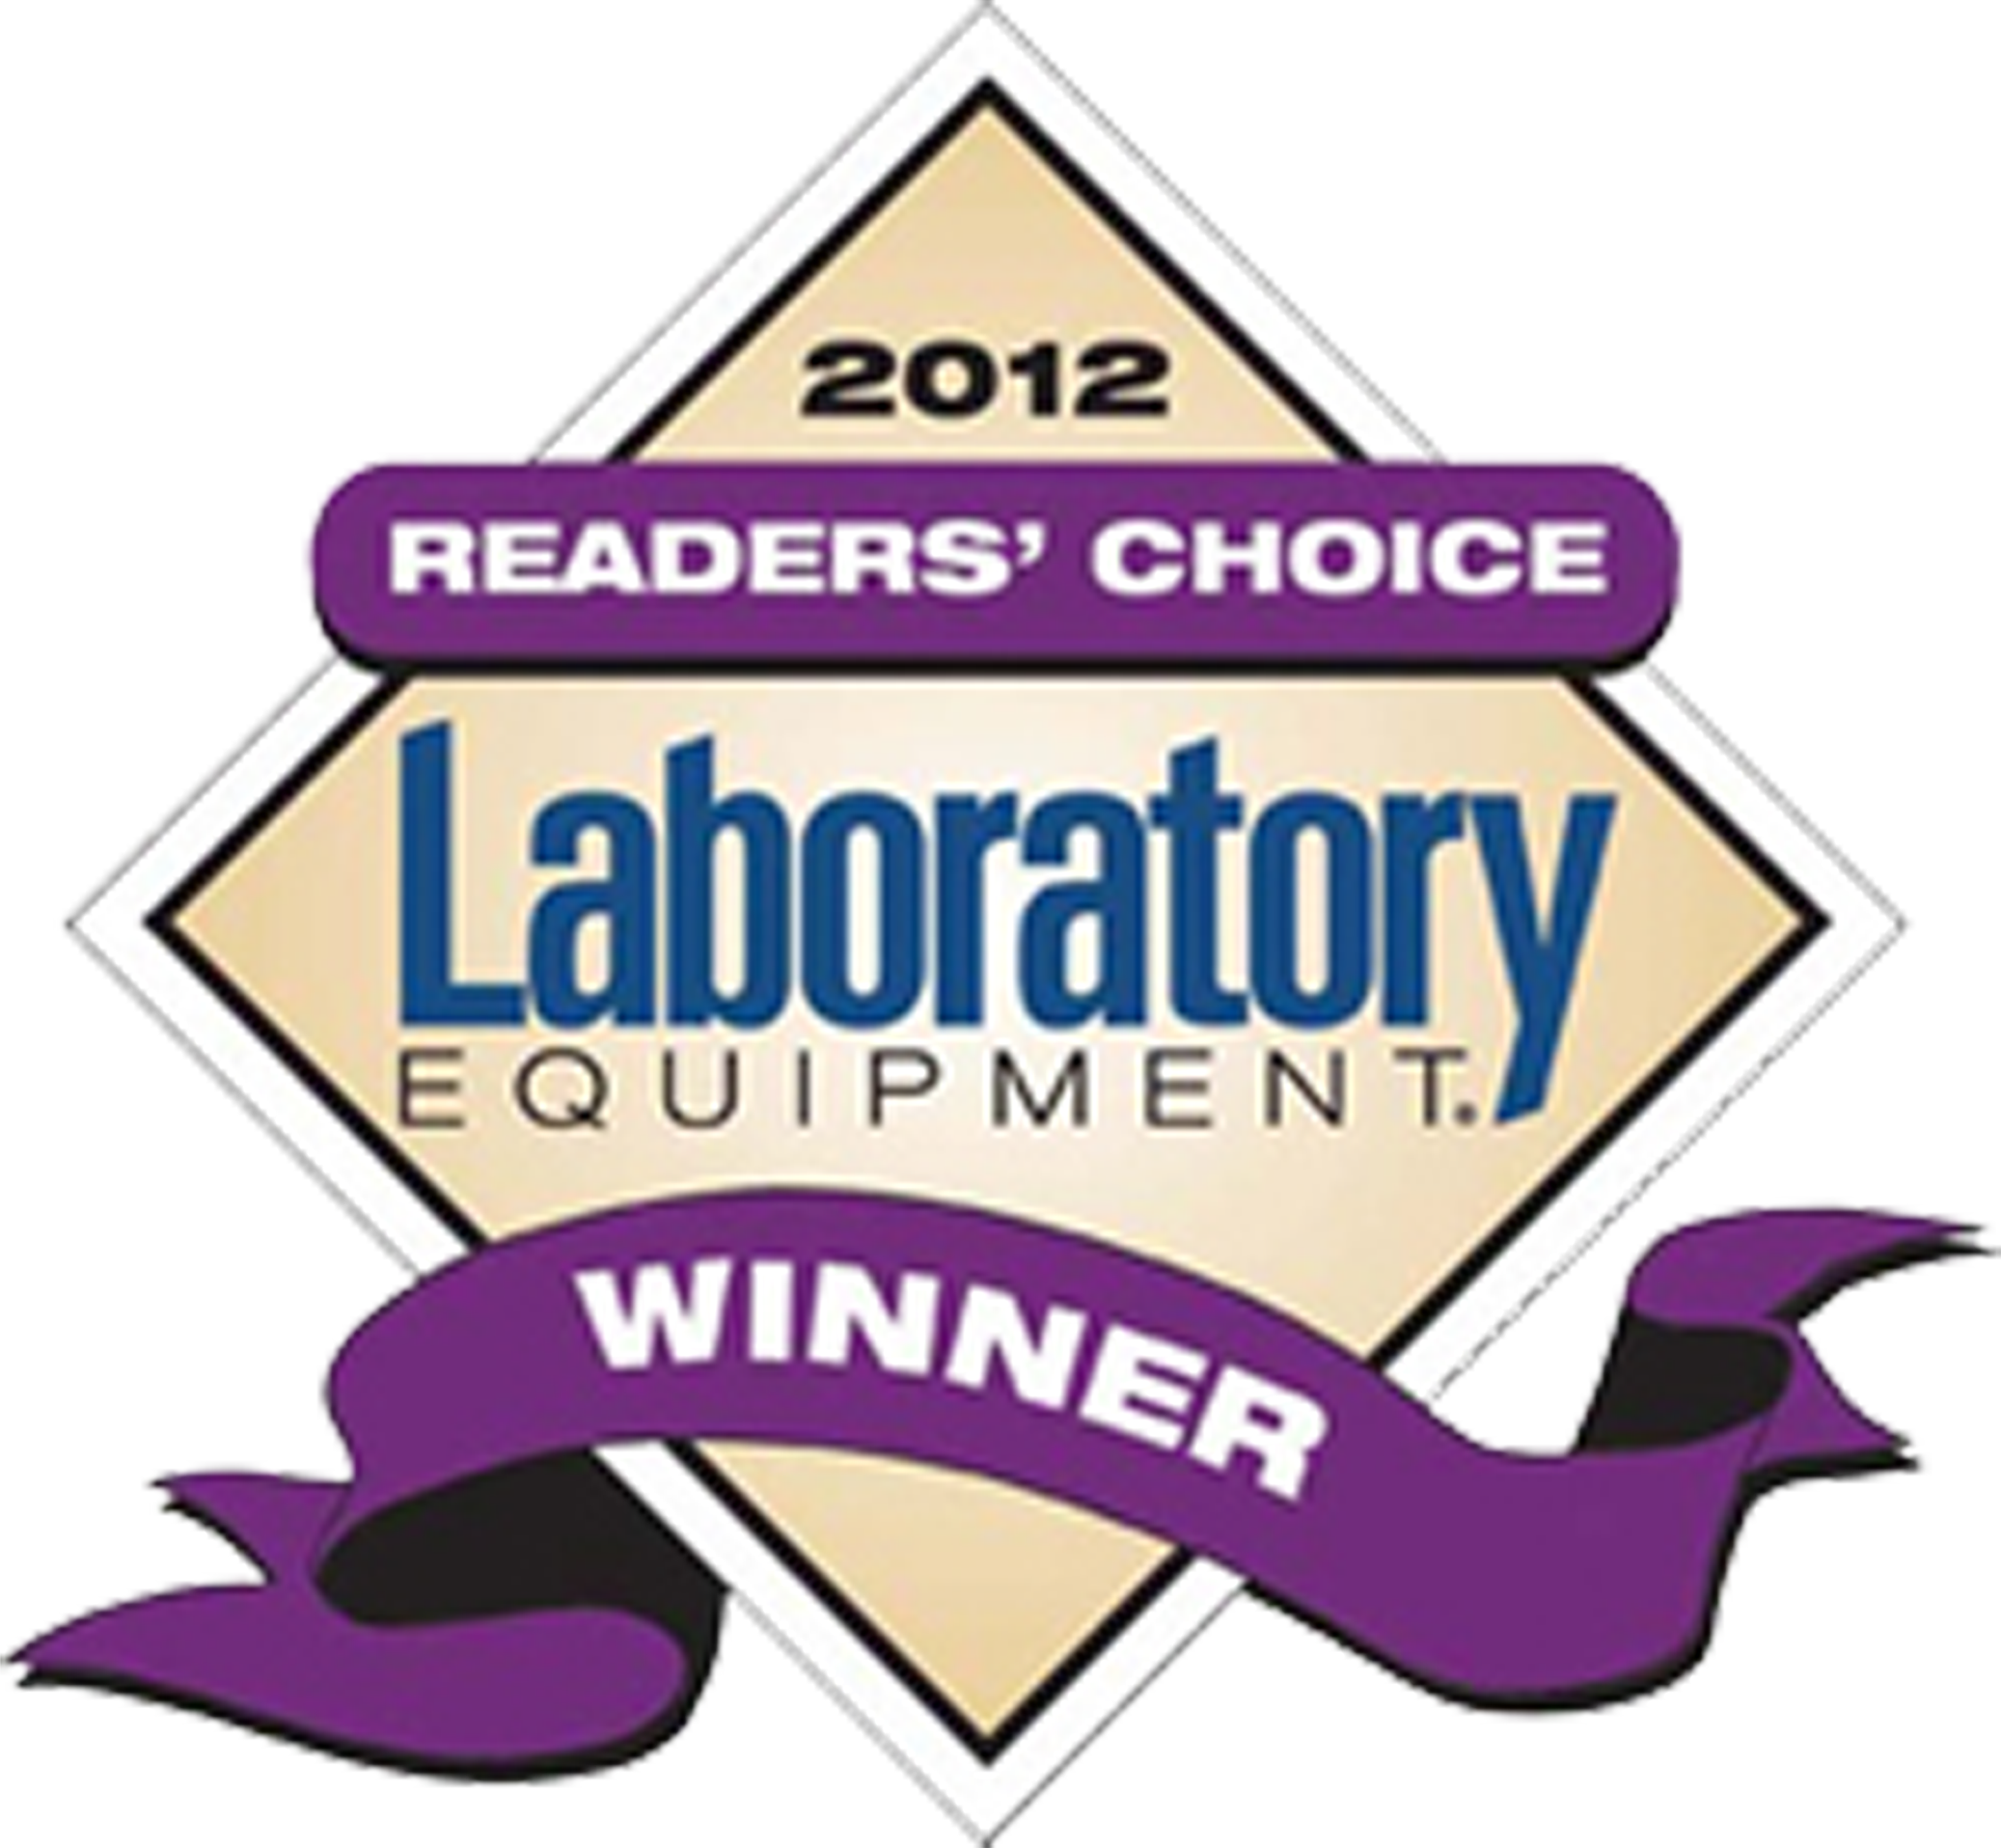 2012 Laboratory Equipment Readers' Choice Winner